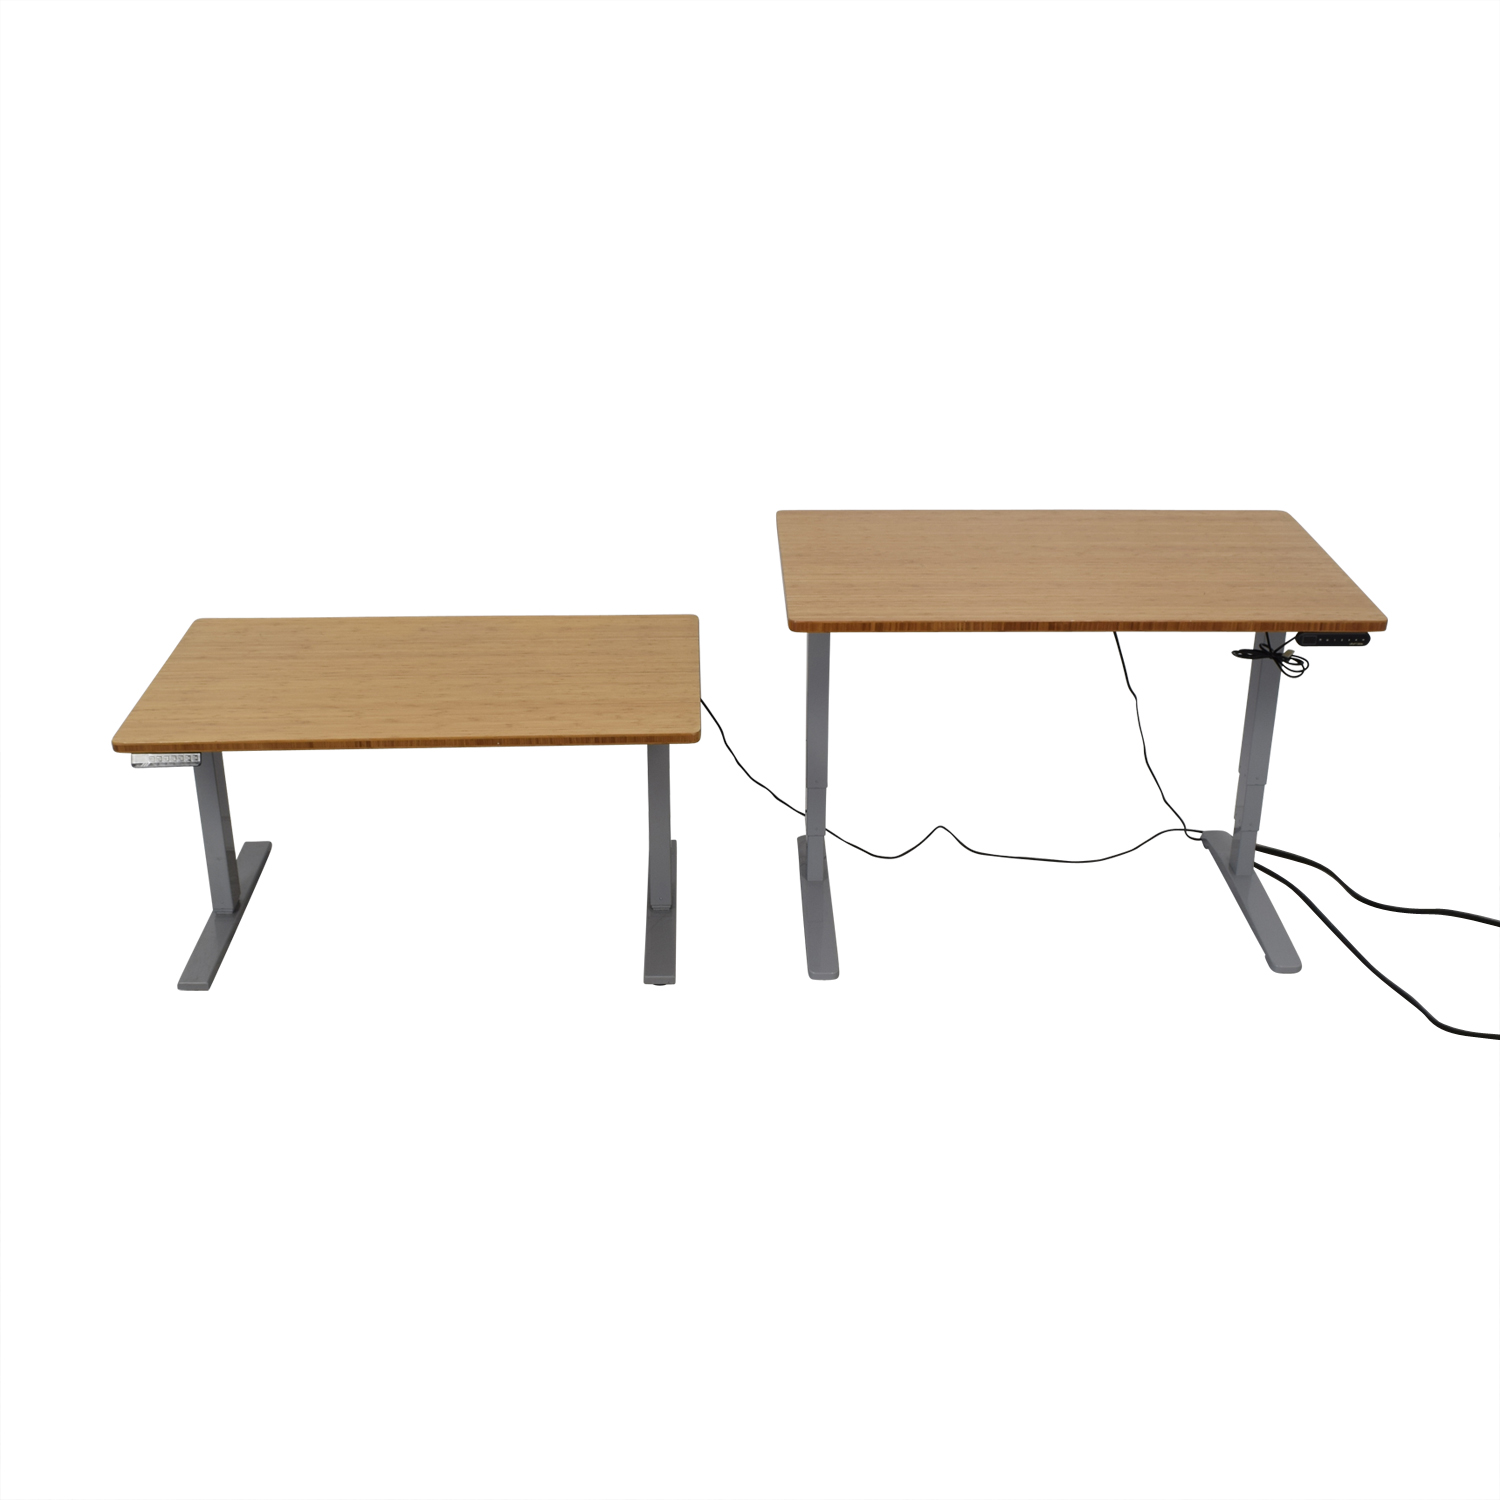 shop The Human Solution Sit to Stand Desks The Human Solution